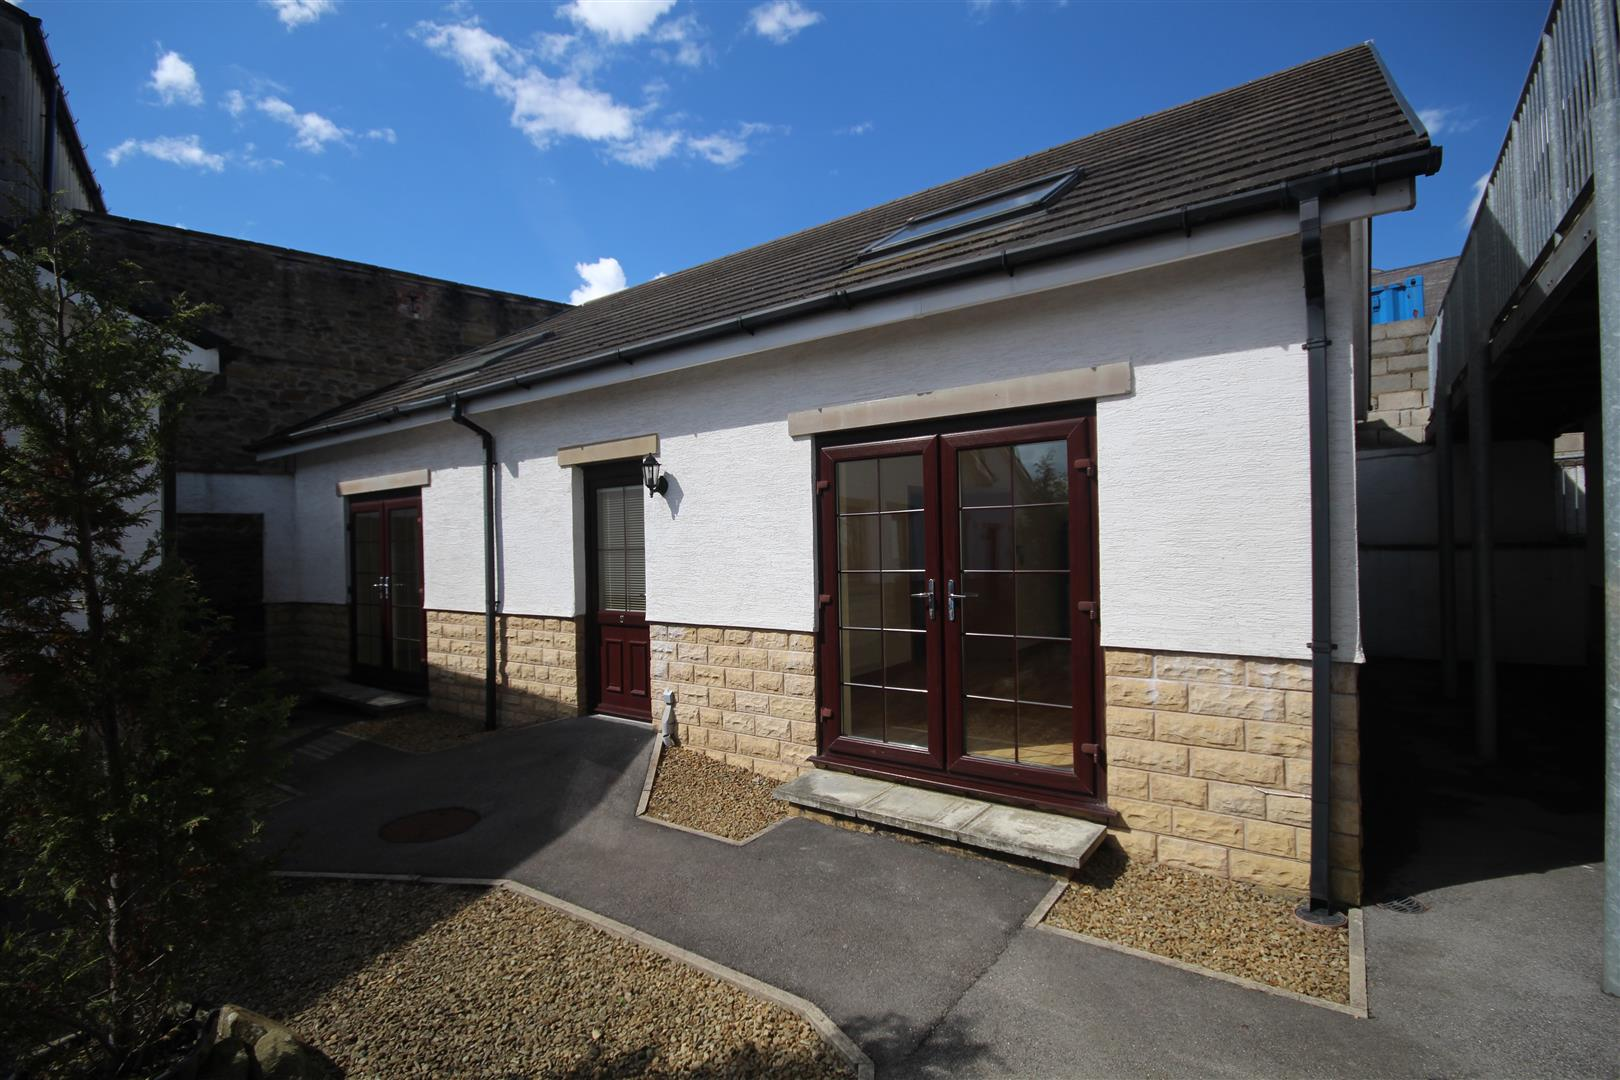 2 bedroom bungalow For Sale in Colne - IMG_3362.jpg